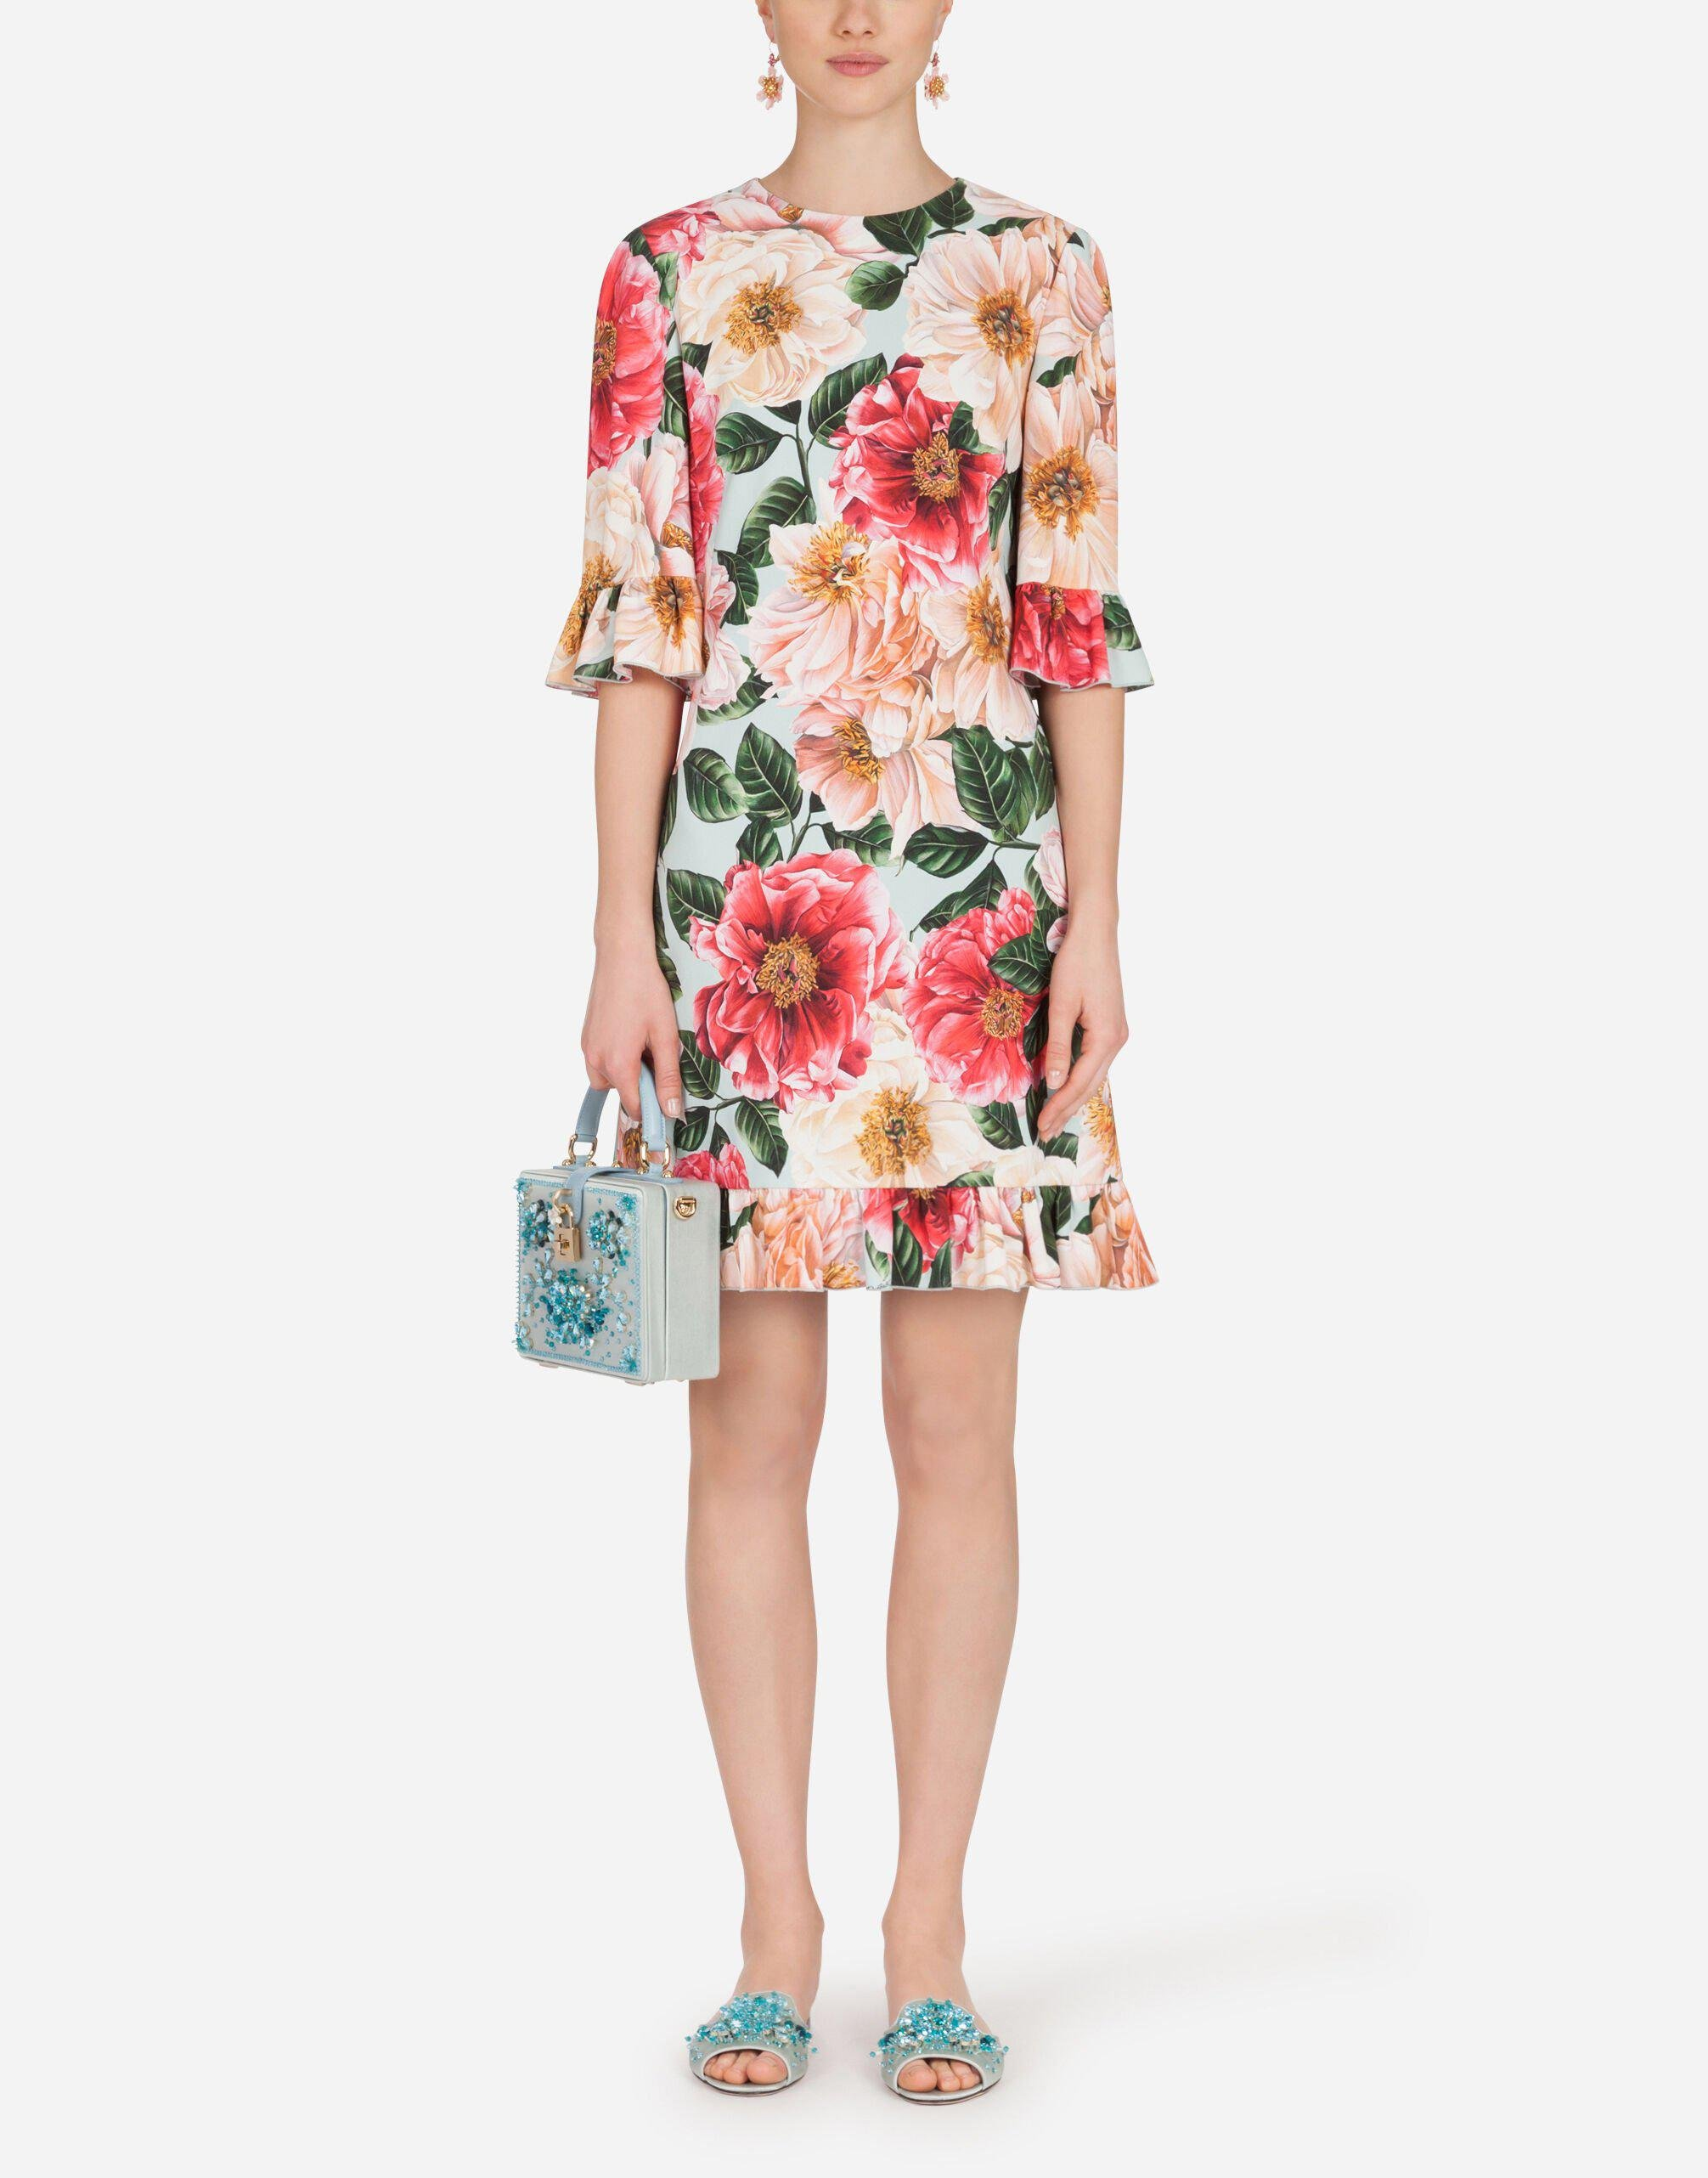 Short camellia-print cady dress with ruffle detailing